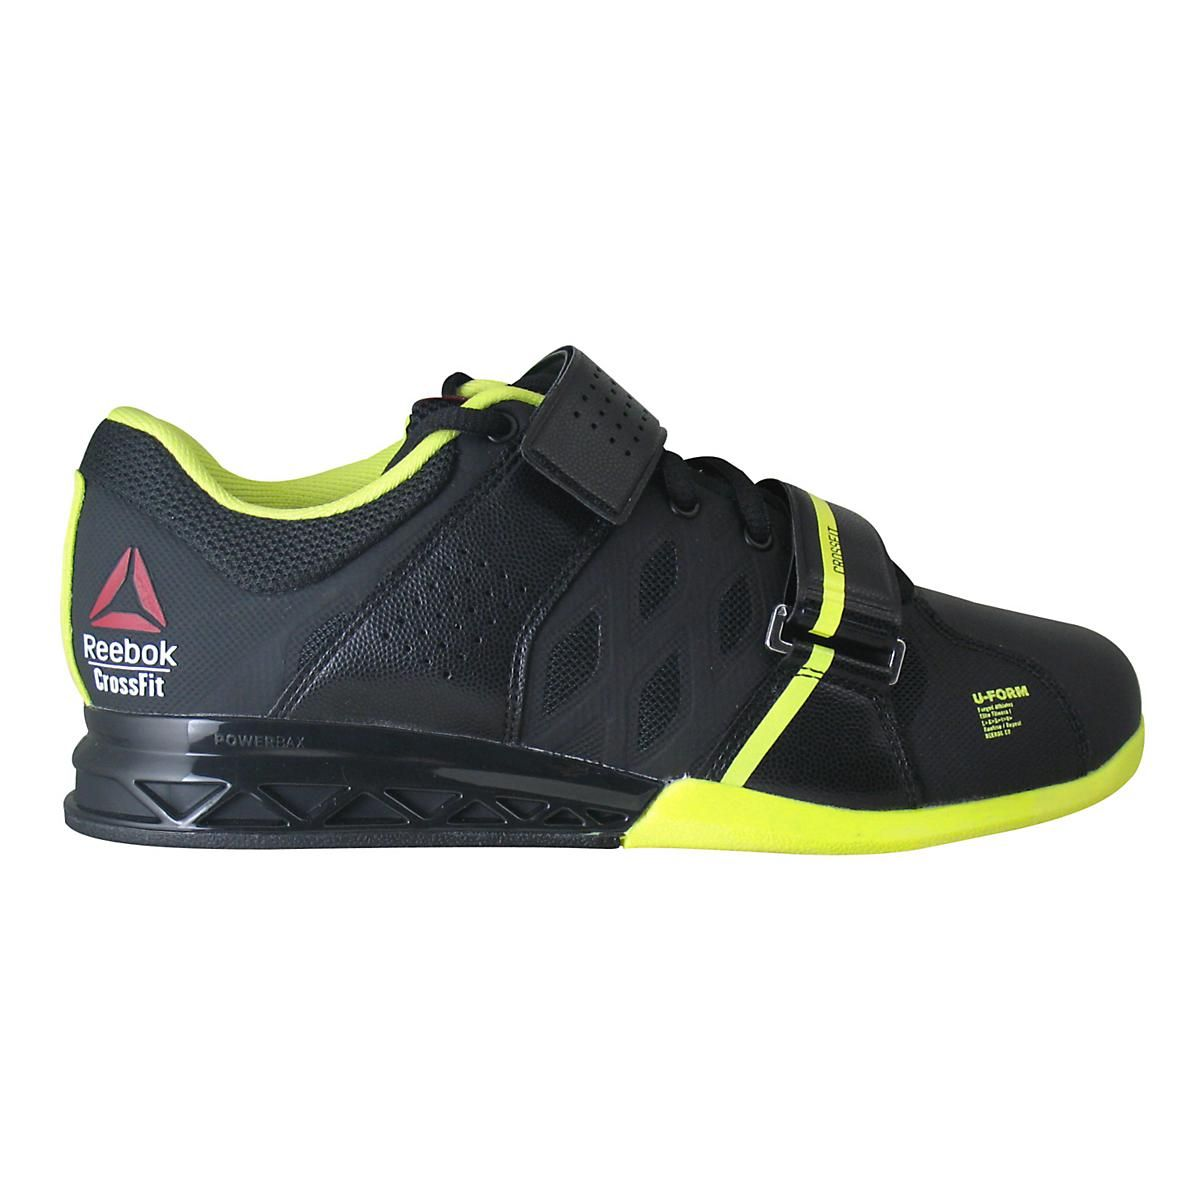 a95b03893c1 Kick up your CrossFit performance with this training shoe thats  specifically designed to enhance your lifting power while also managing to  be lighter than ...